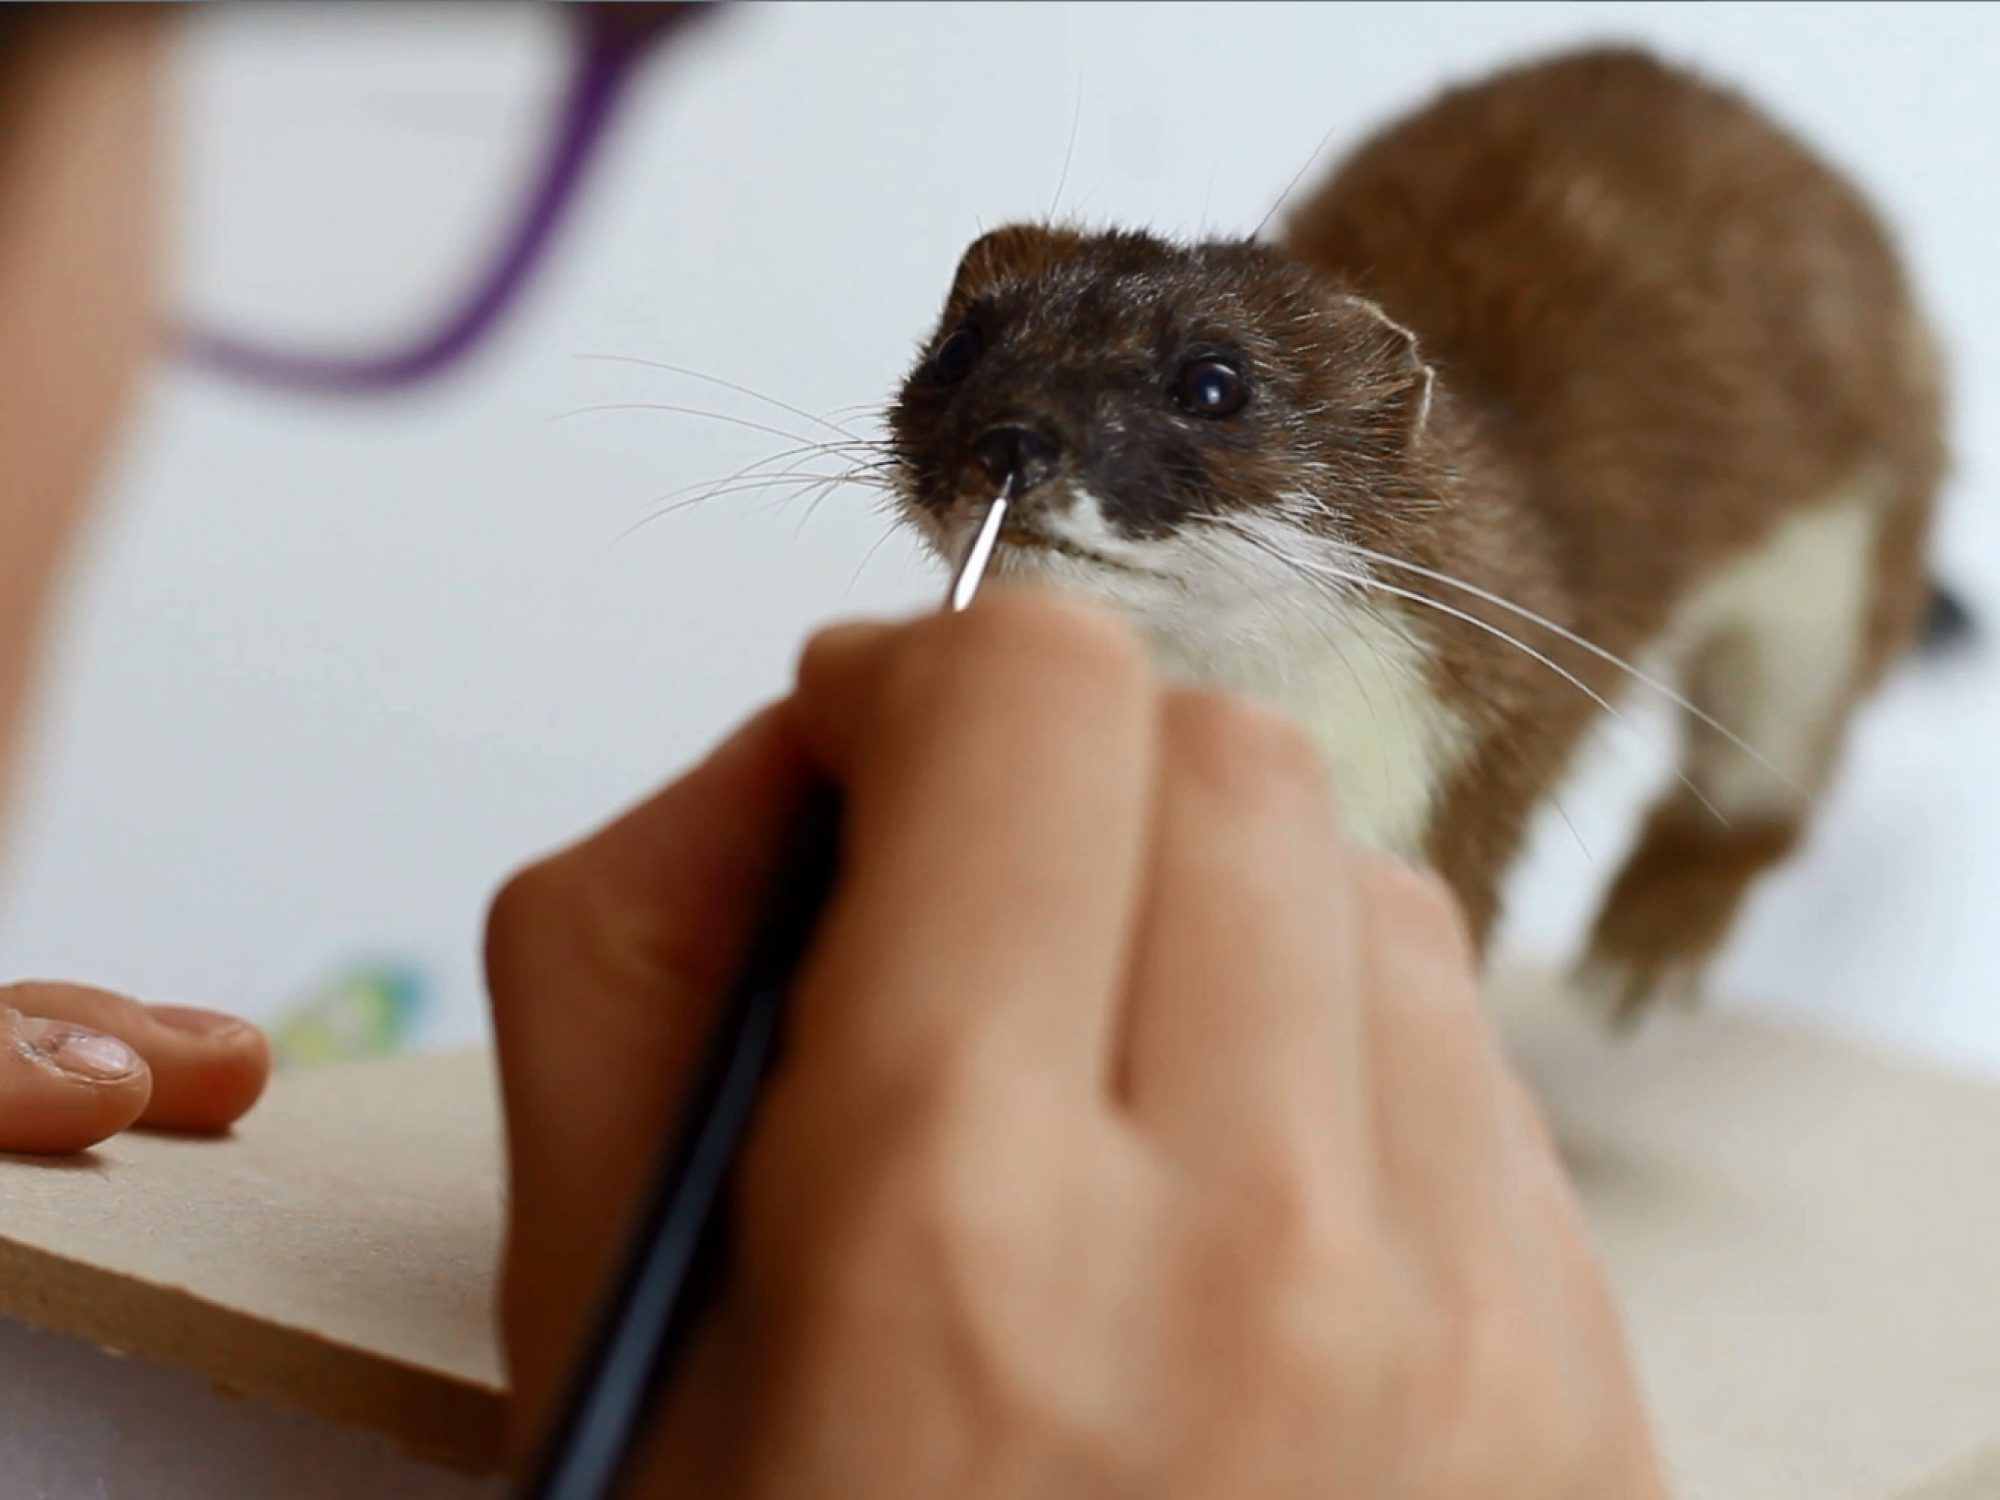 Woman painting taxidermy stoat's nose